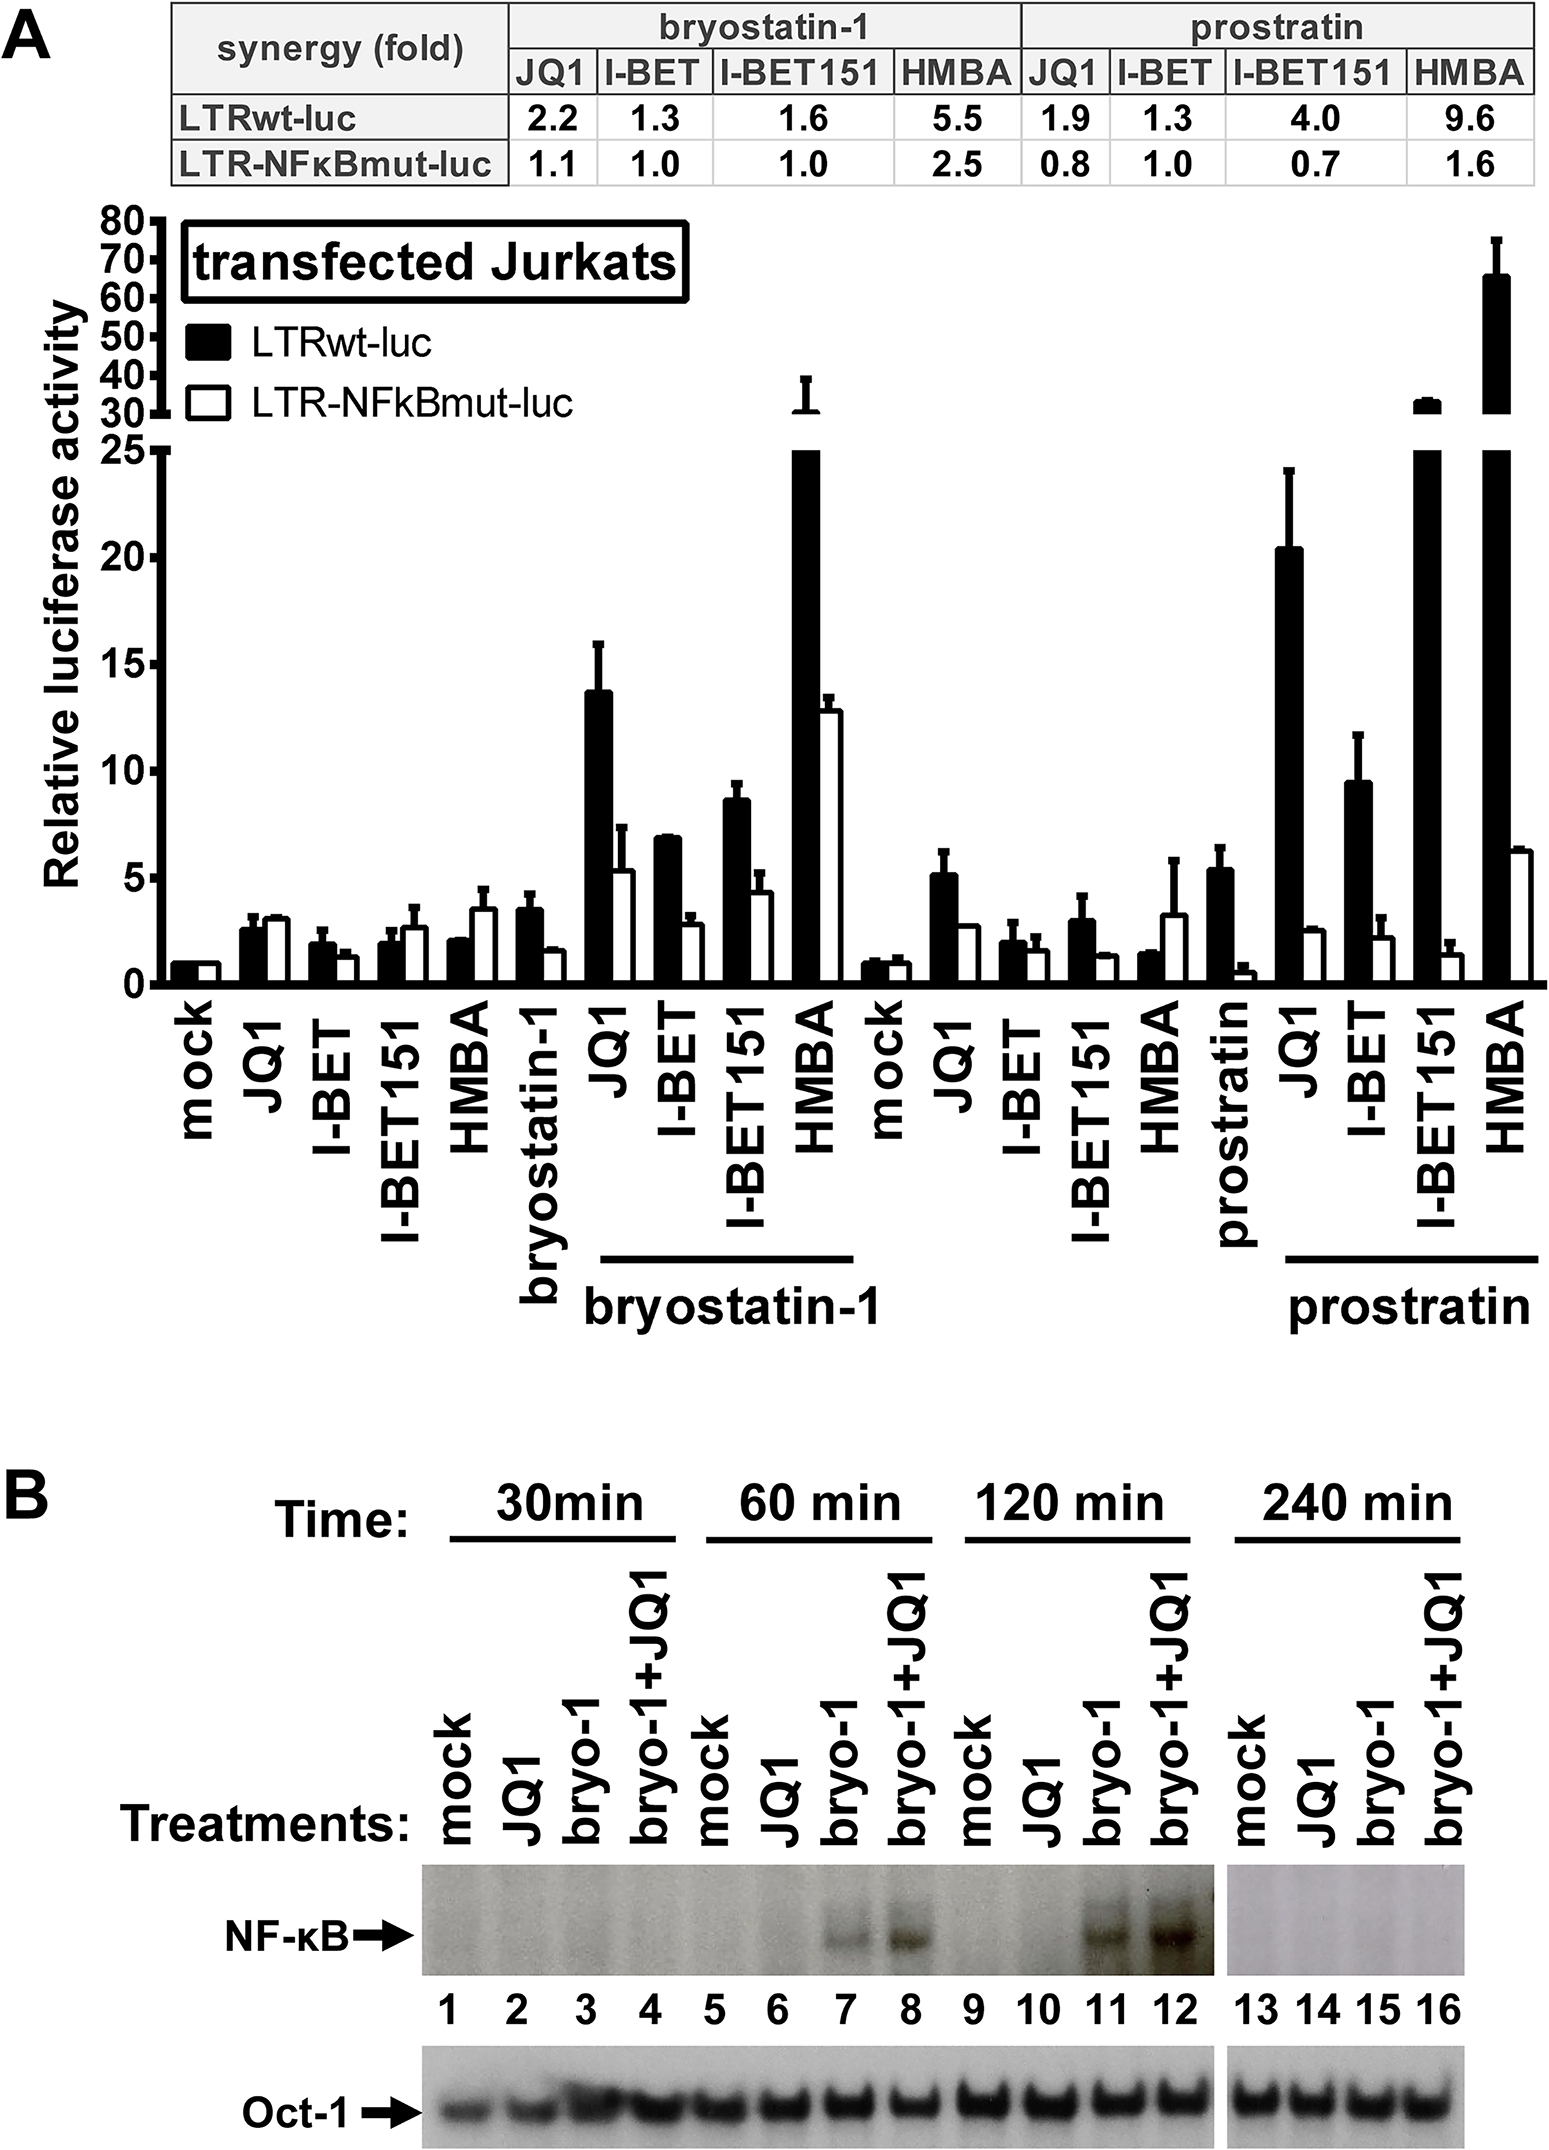 Synergistic inducibility of HIV-1 LTR promoter by PKC agonist+BETi/HMBA combinatory treatments depends on NF-κB.